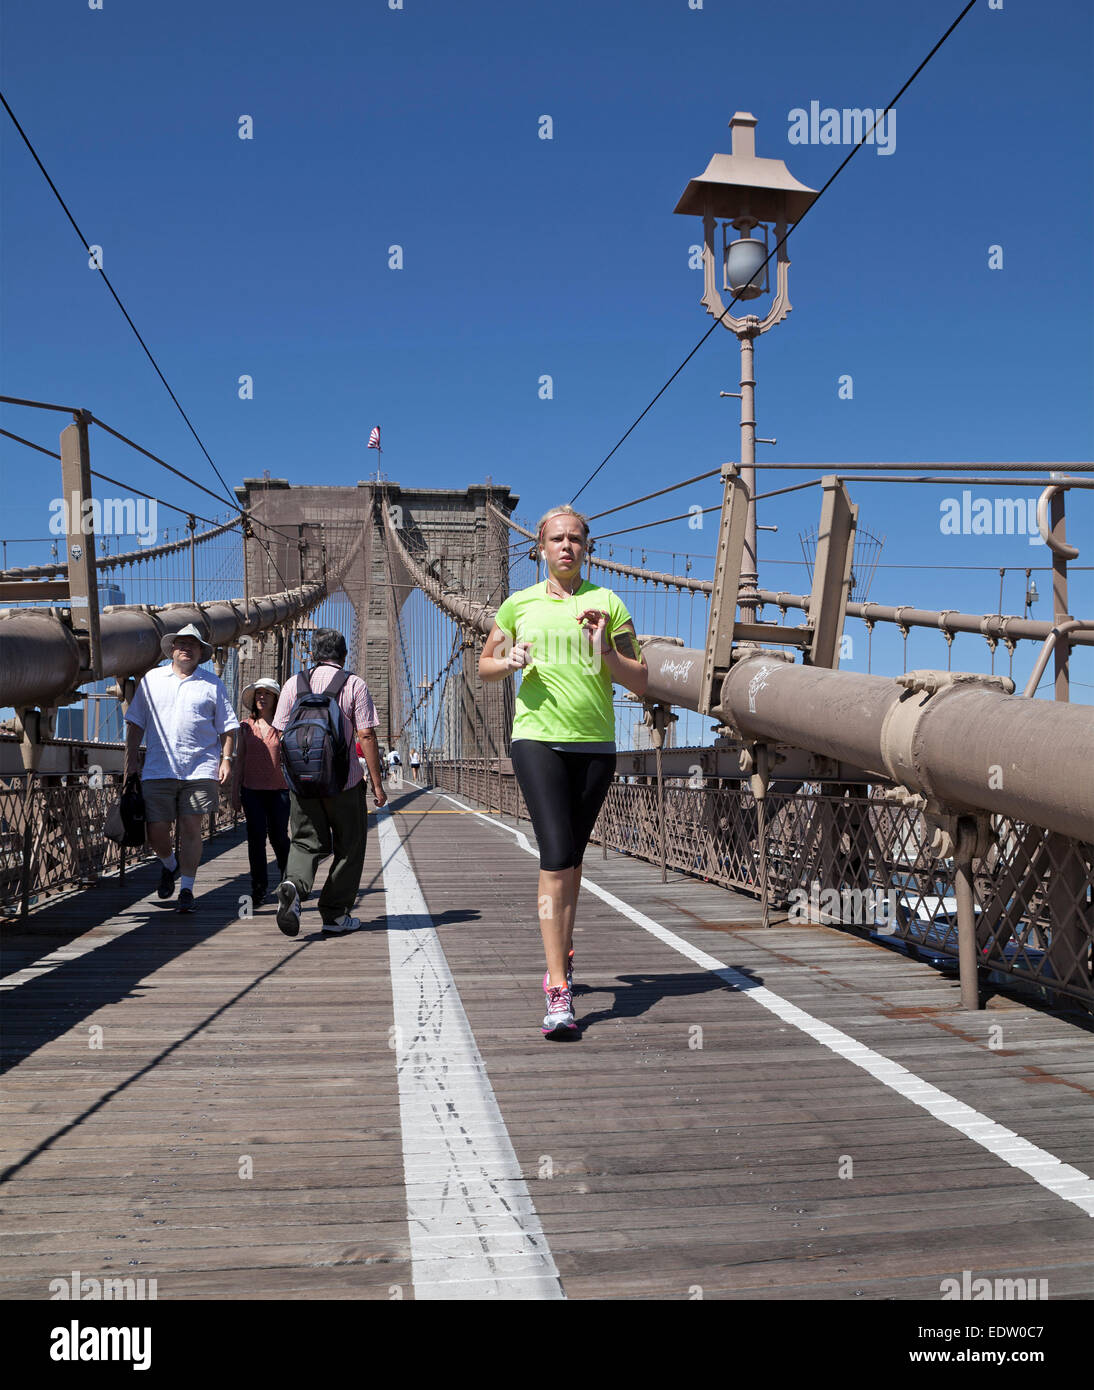 People walk, run, or ride bicycles separately from cars on the Brooklyn Bridge in New York City. - Stock Photo